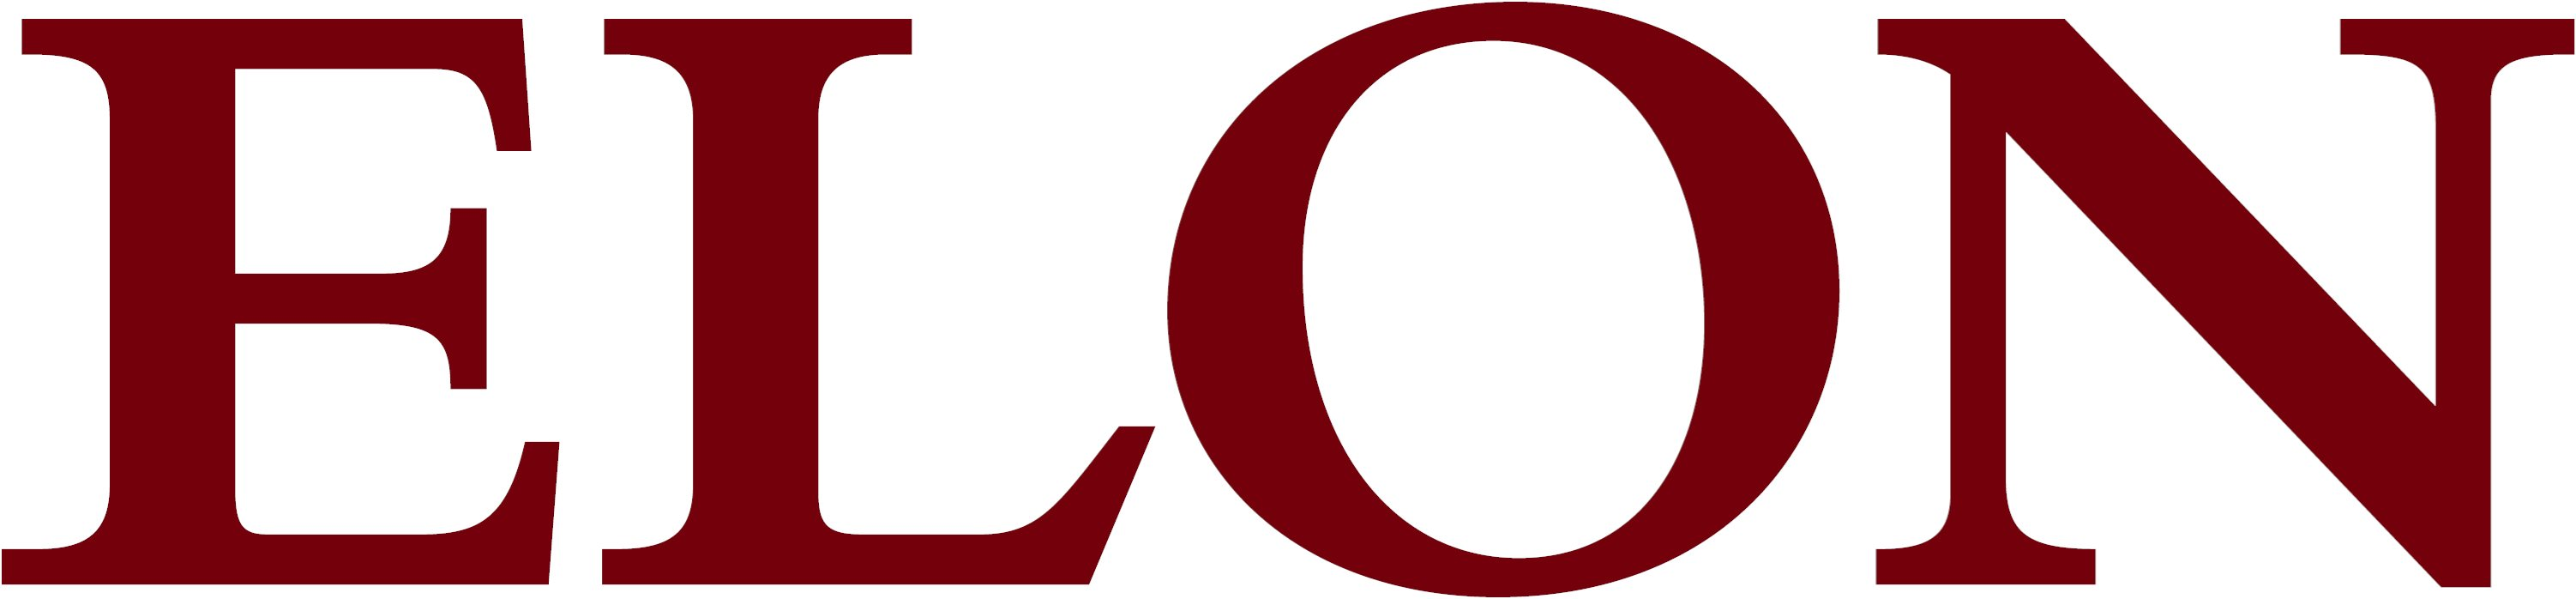 Elon University secondary wordmark maroon example